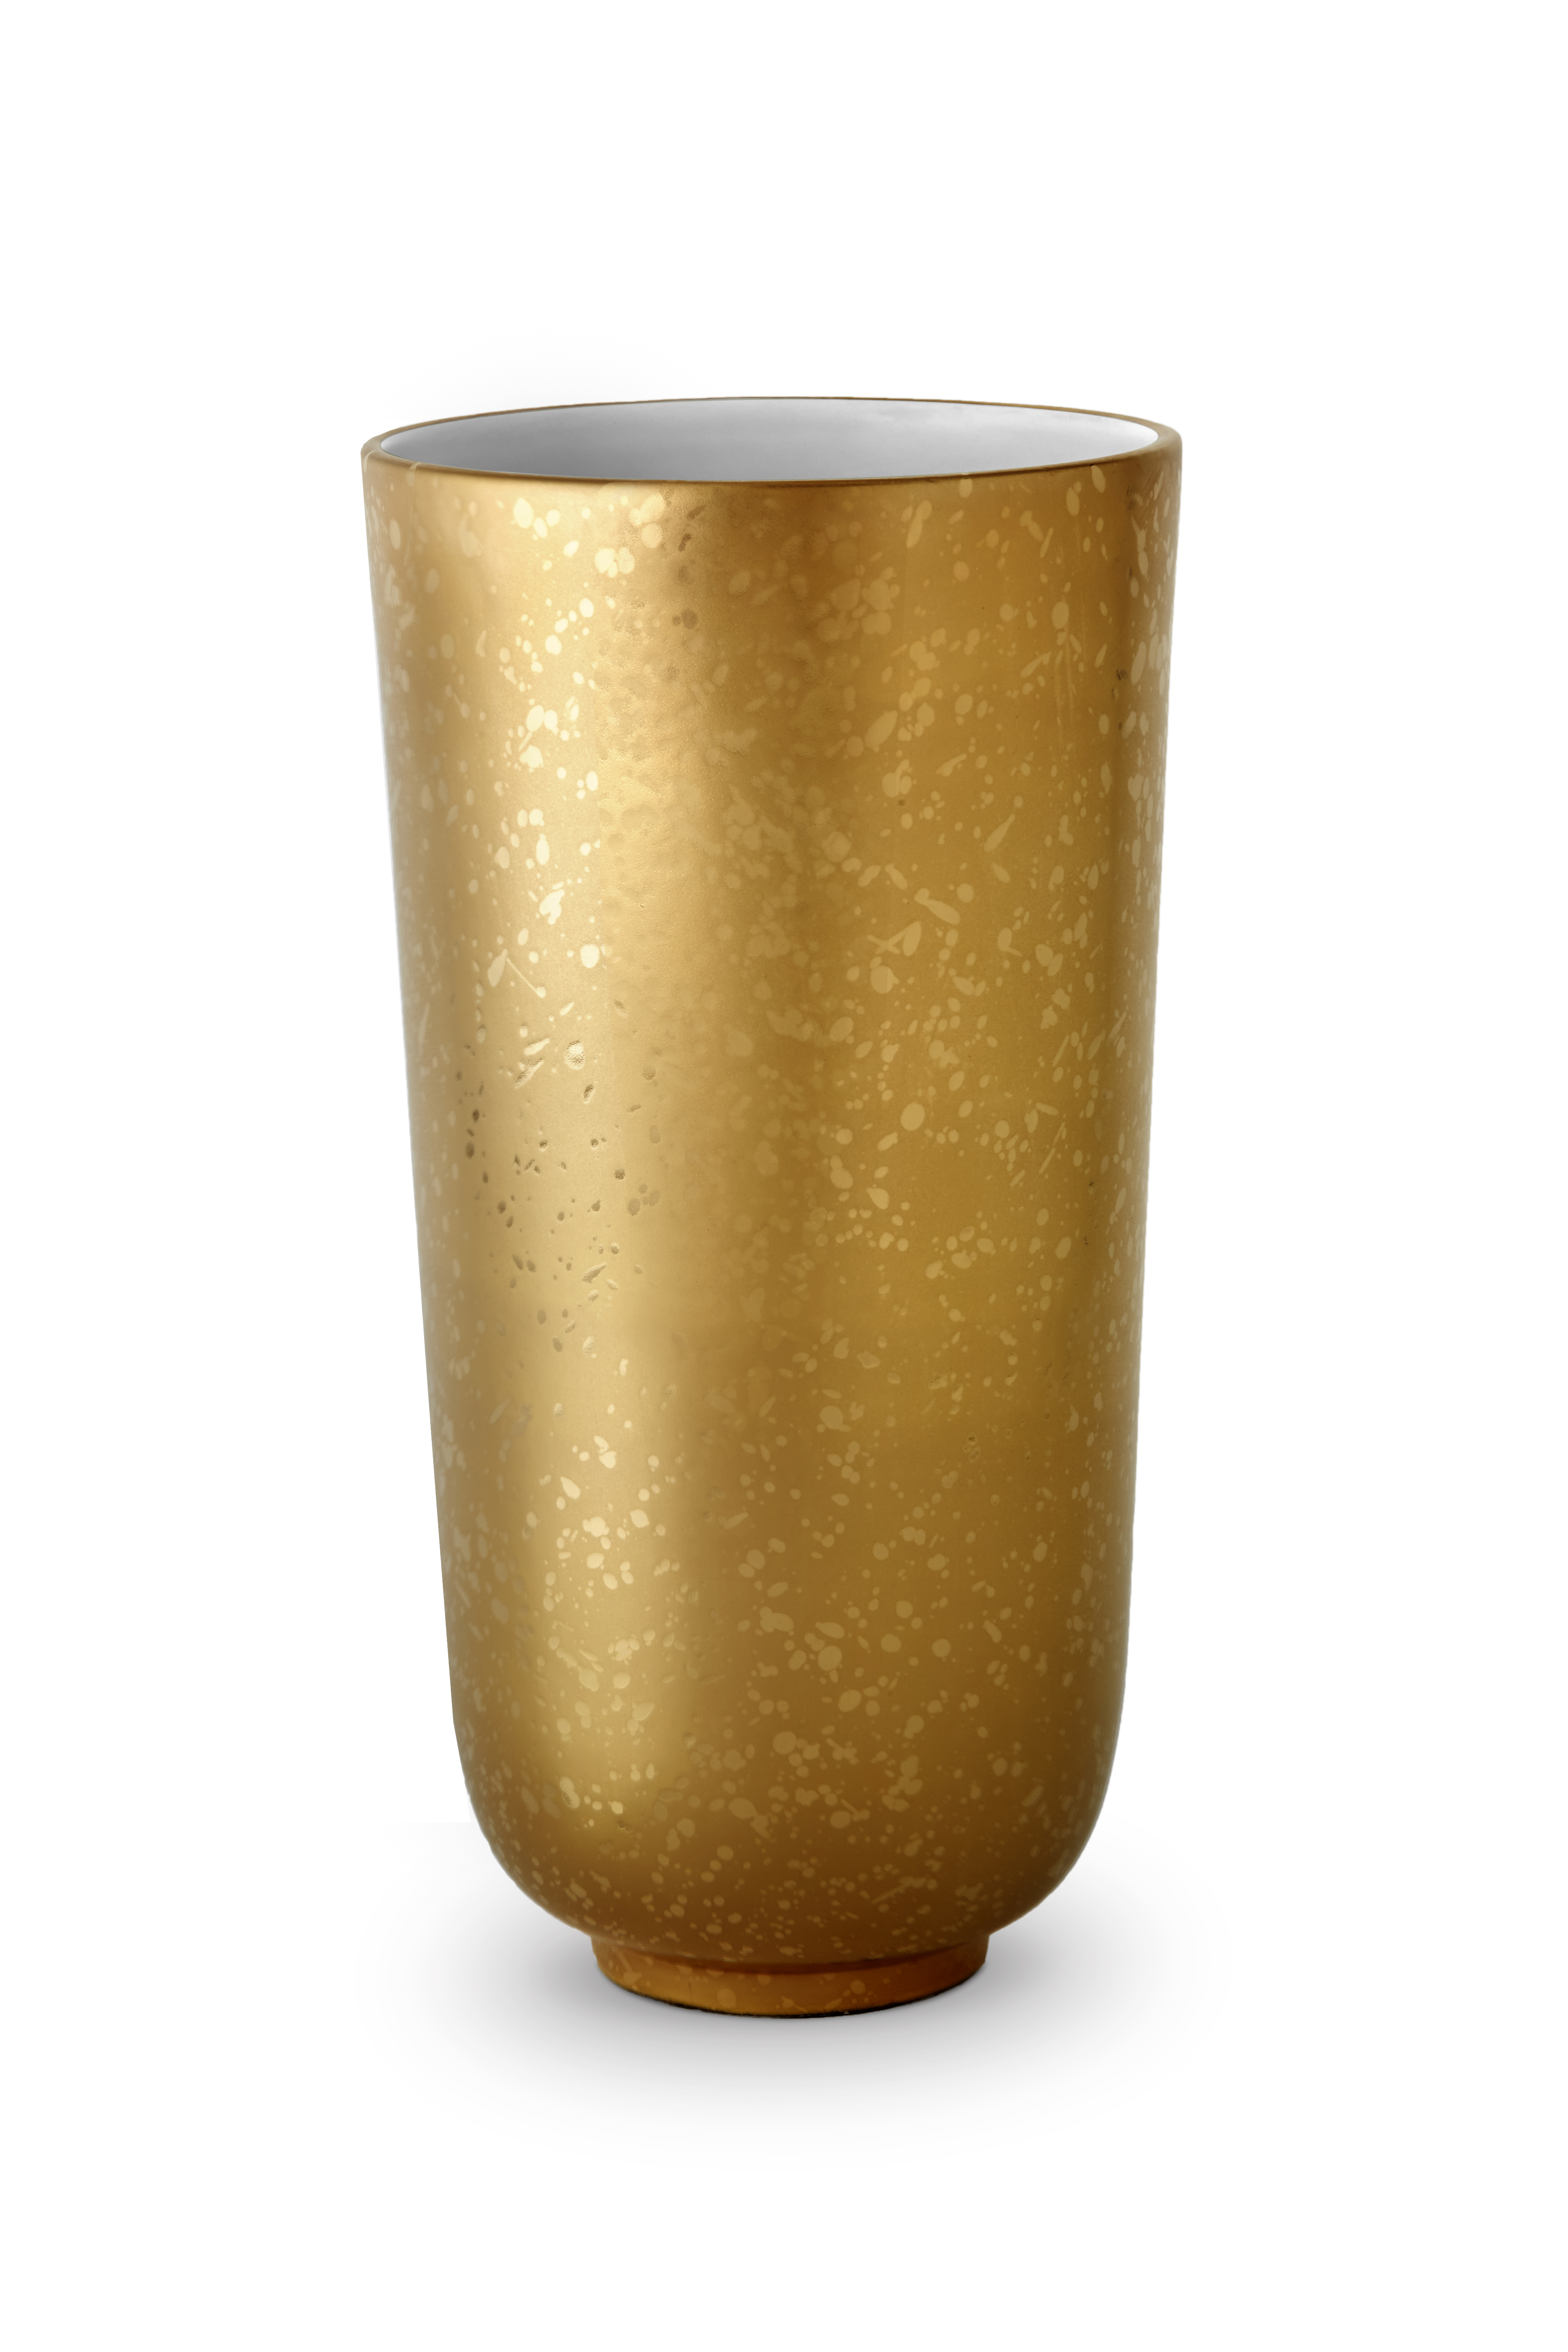 l objet alchimie gold vase large paris jewelers gifts. Black Bedroom Furniture Sets. Home Design Ideas